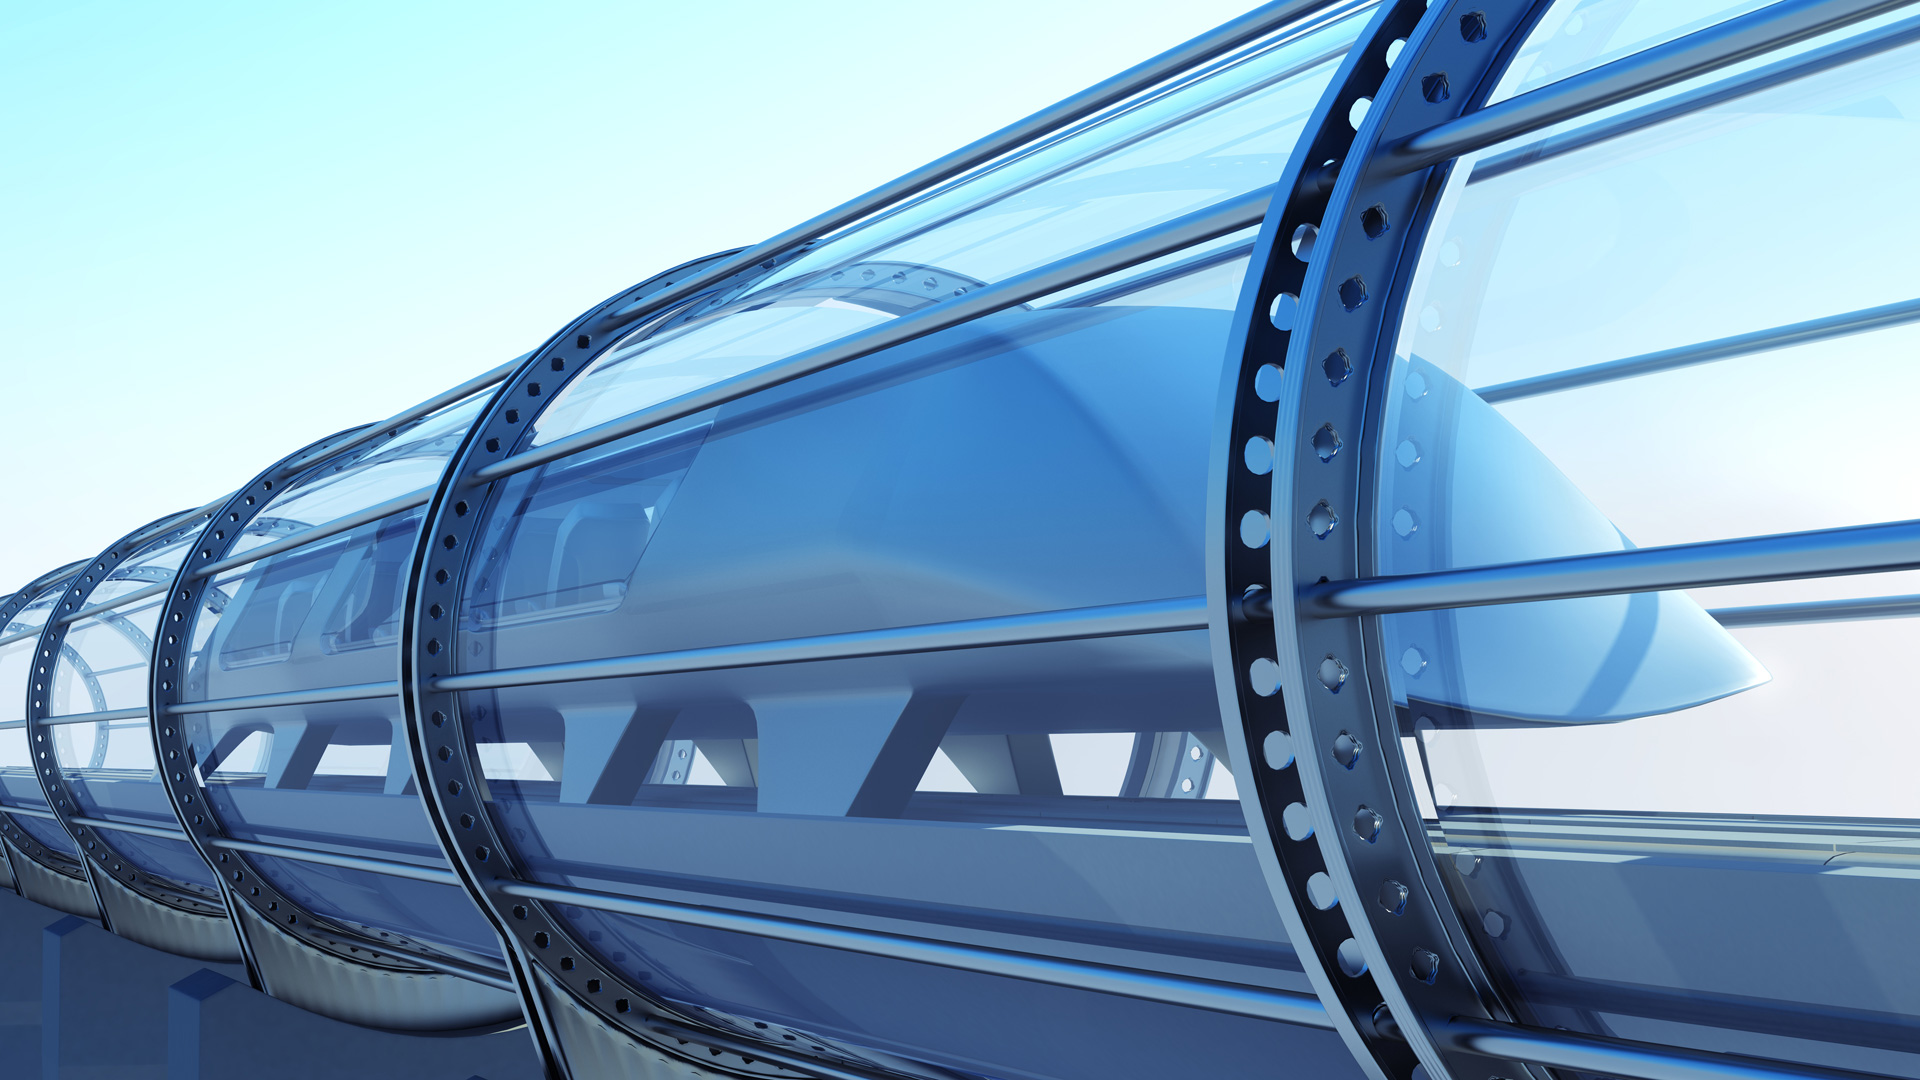 Along with the many mobility tools in the near future, we will use Hyperloop. The project is a tubular system in which a capsule, full of people or goods, move in a vacuum environment. The top speed is 1200 km/h and the first system of its kind will connect Abu Dhabi and Dubai. Soon Hyperloop systems will also be constructed in India, San Francisco and Los Angeles.